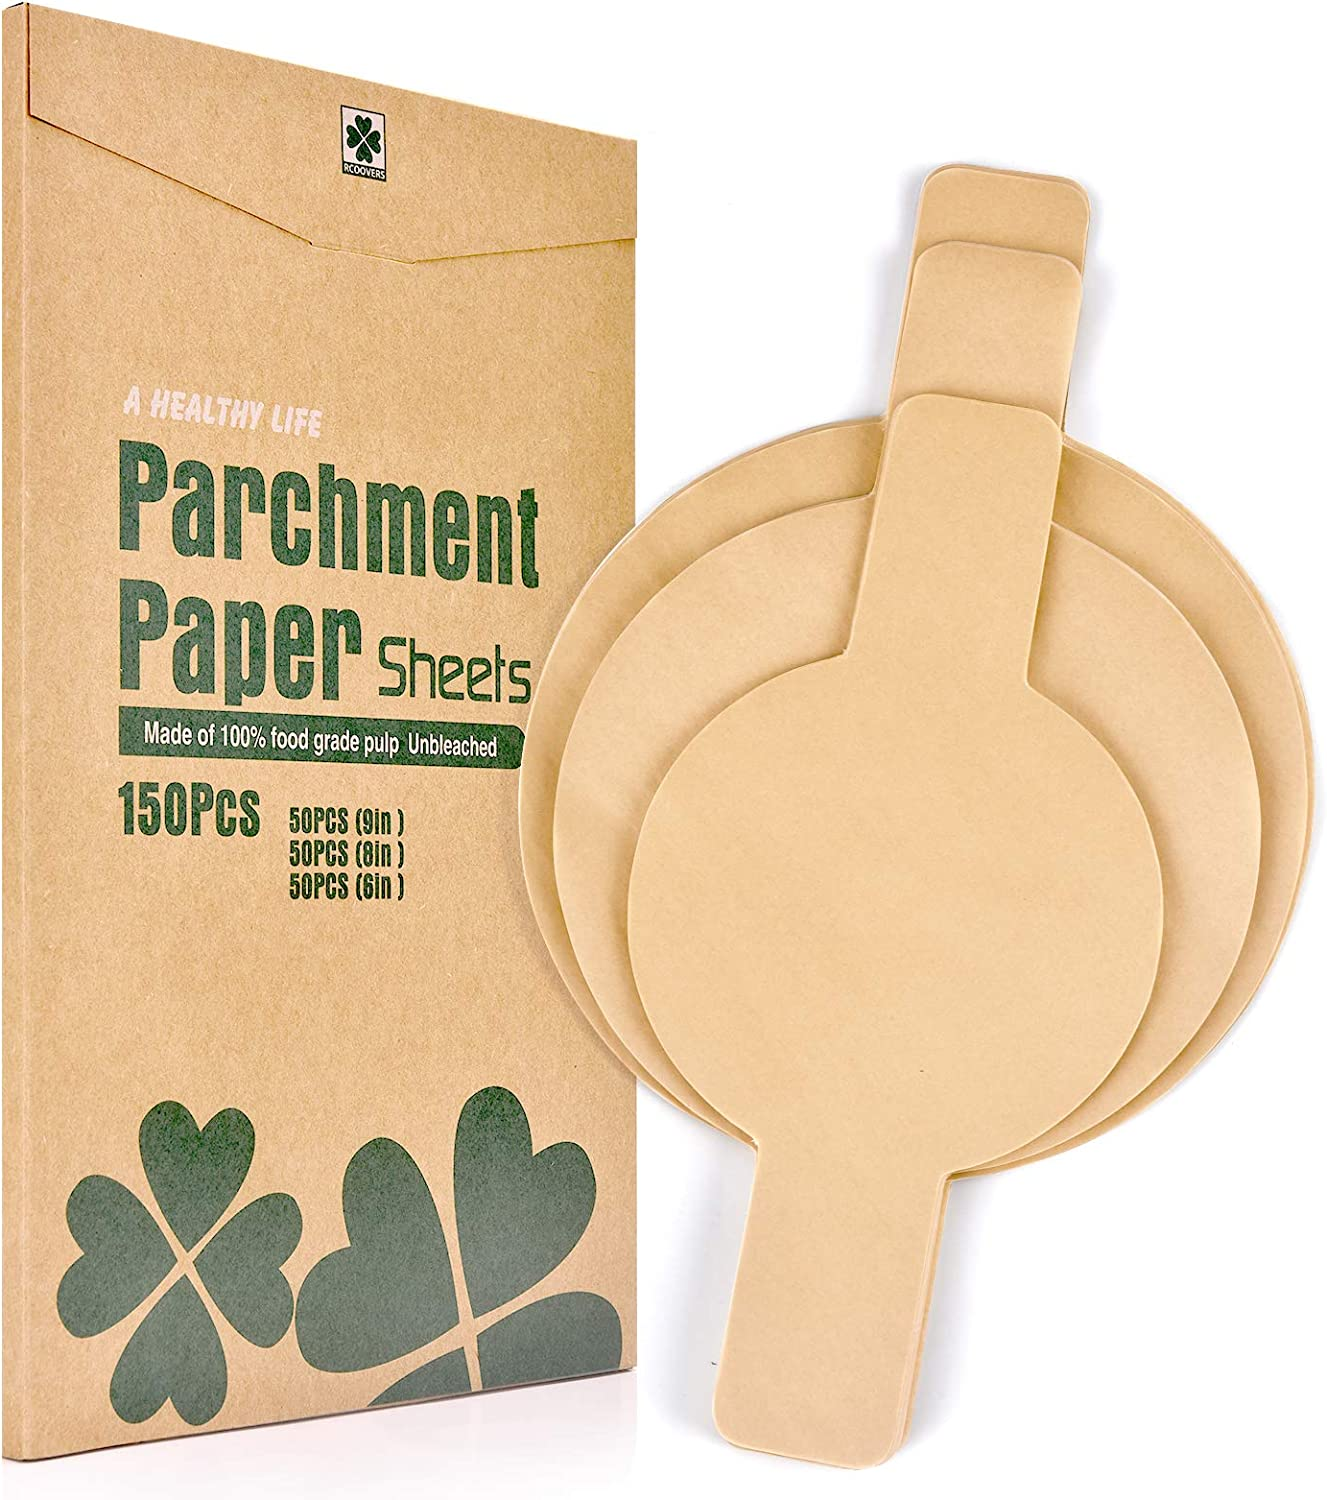 Baking Parchment Paper Rounds with Easy Lift Tabs, 150Pcs Unbleached 6/8/9